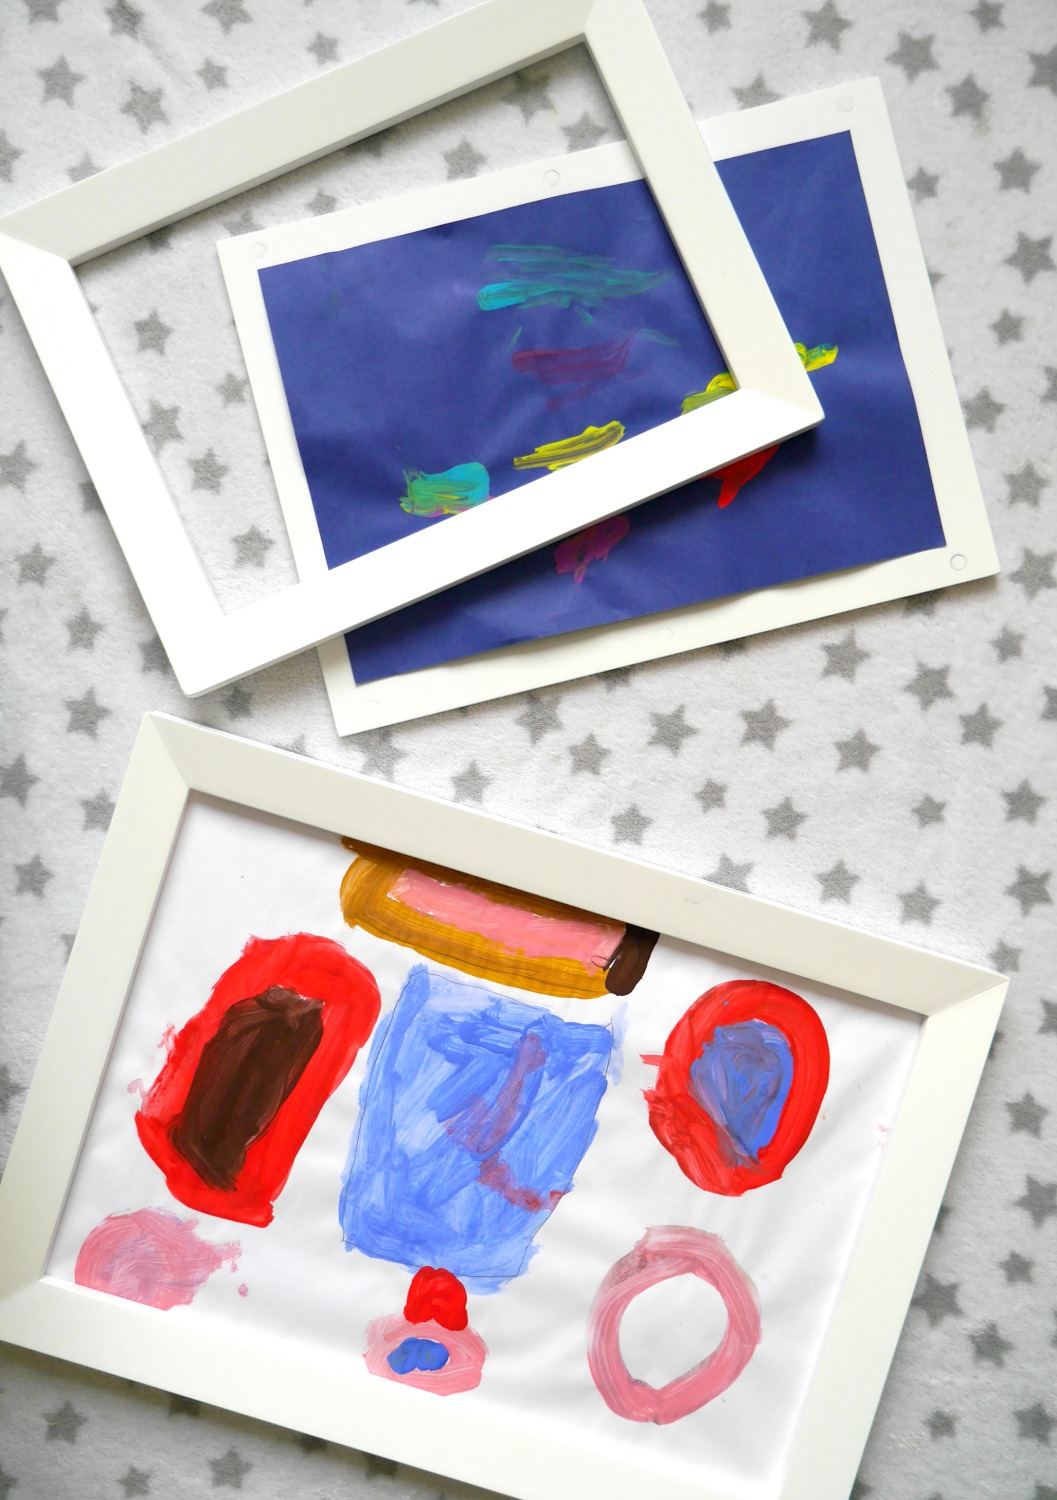 Magnetic picture frames from GLTC - a clever way to display children's art work around the house